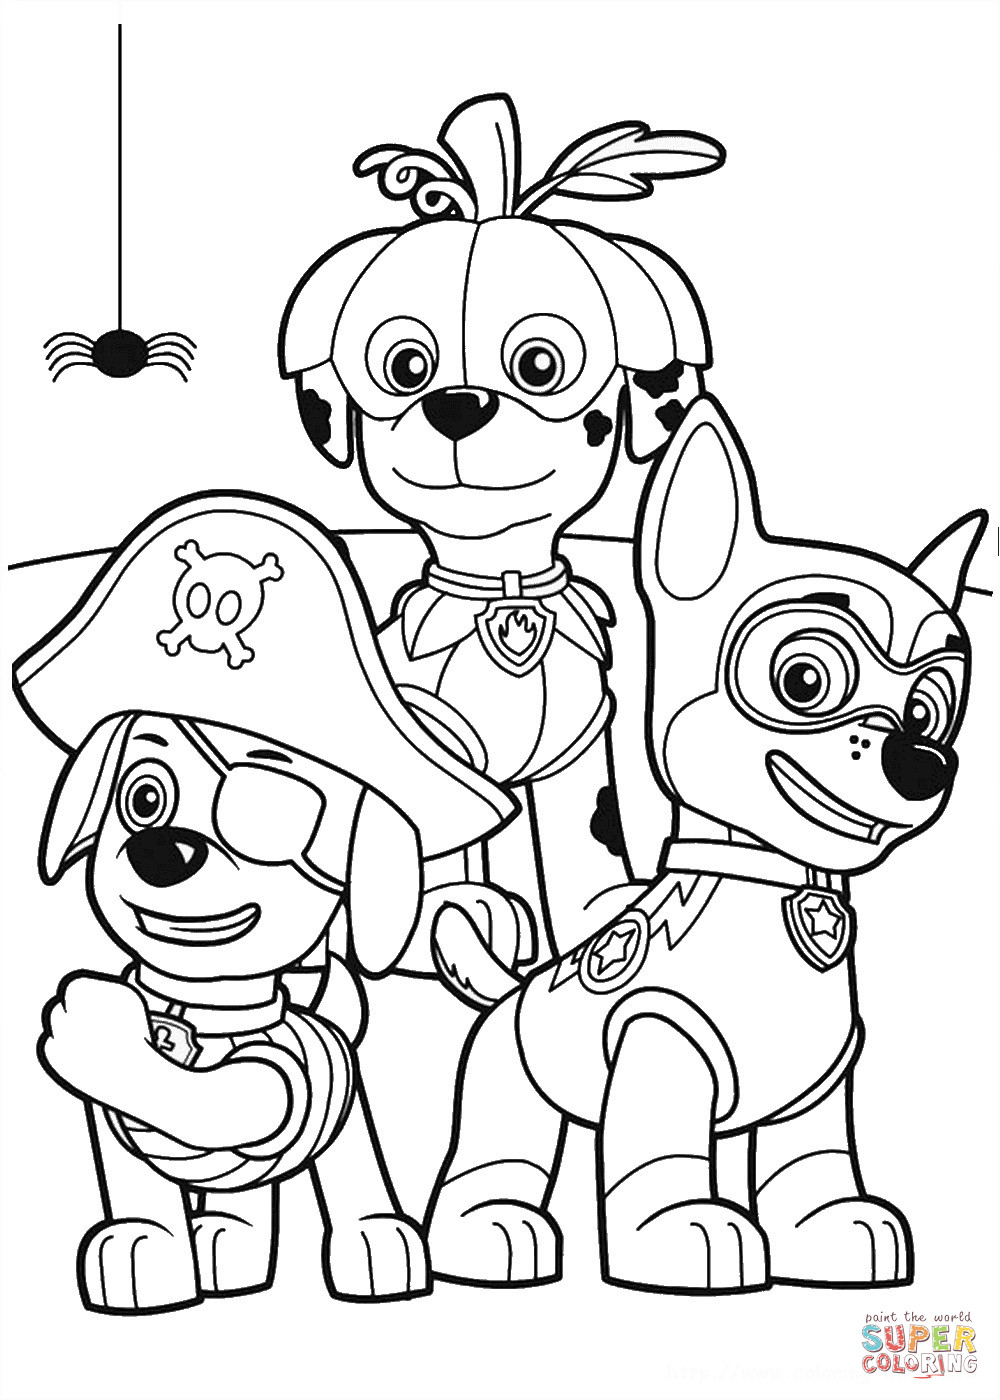 Best ideas about Paw Patrol Free Coloring Sheets . Save or Pin Paw Patrol Halloween Party coloring page Now.